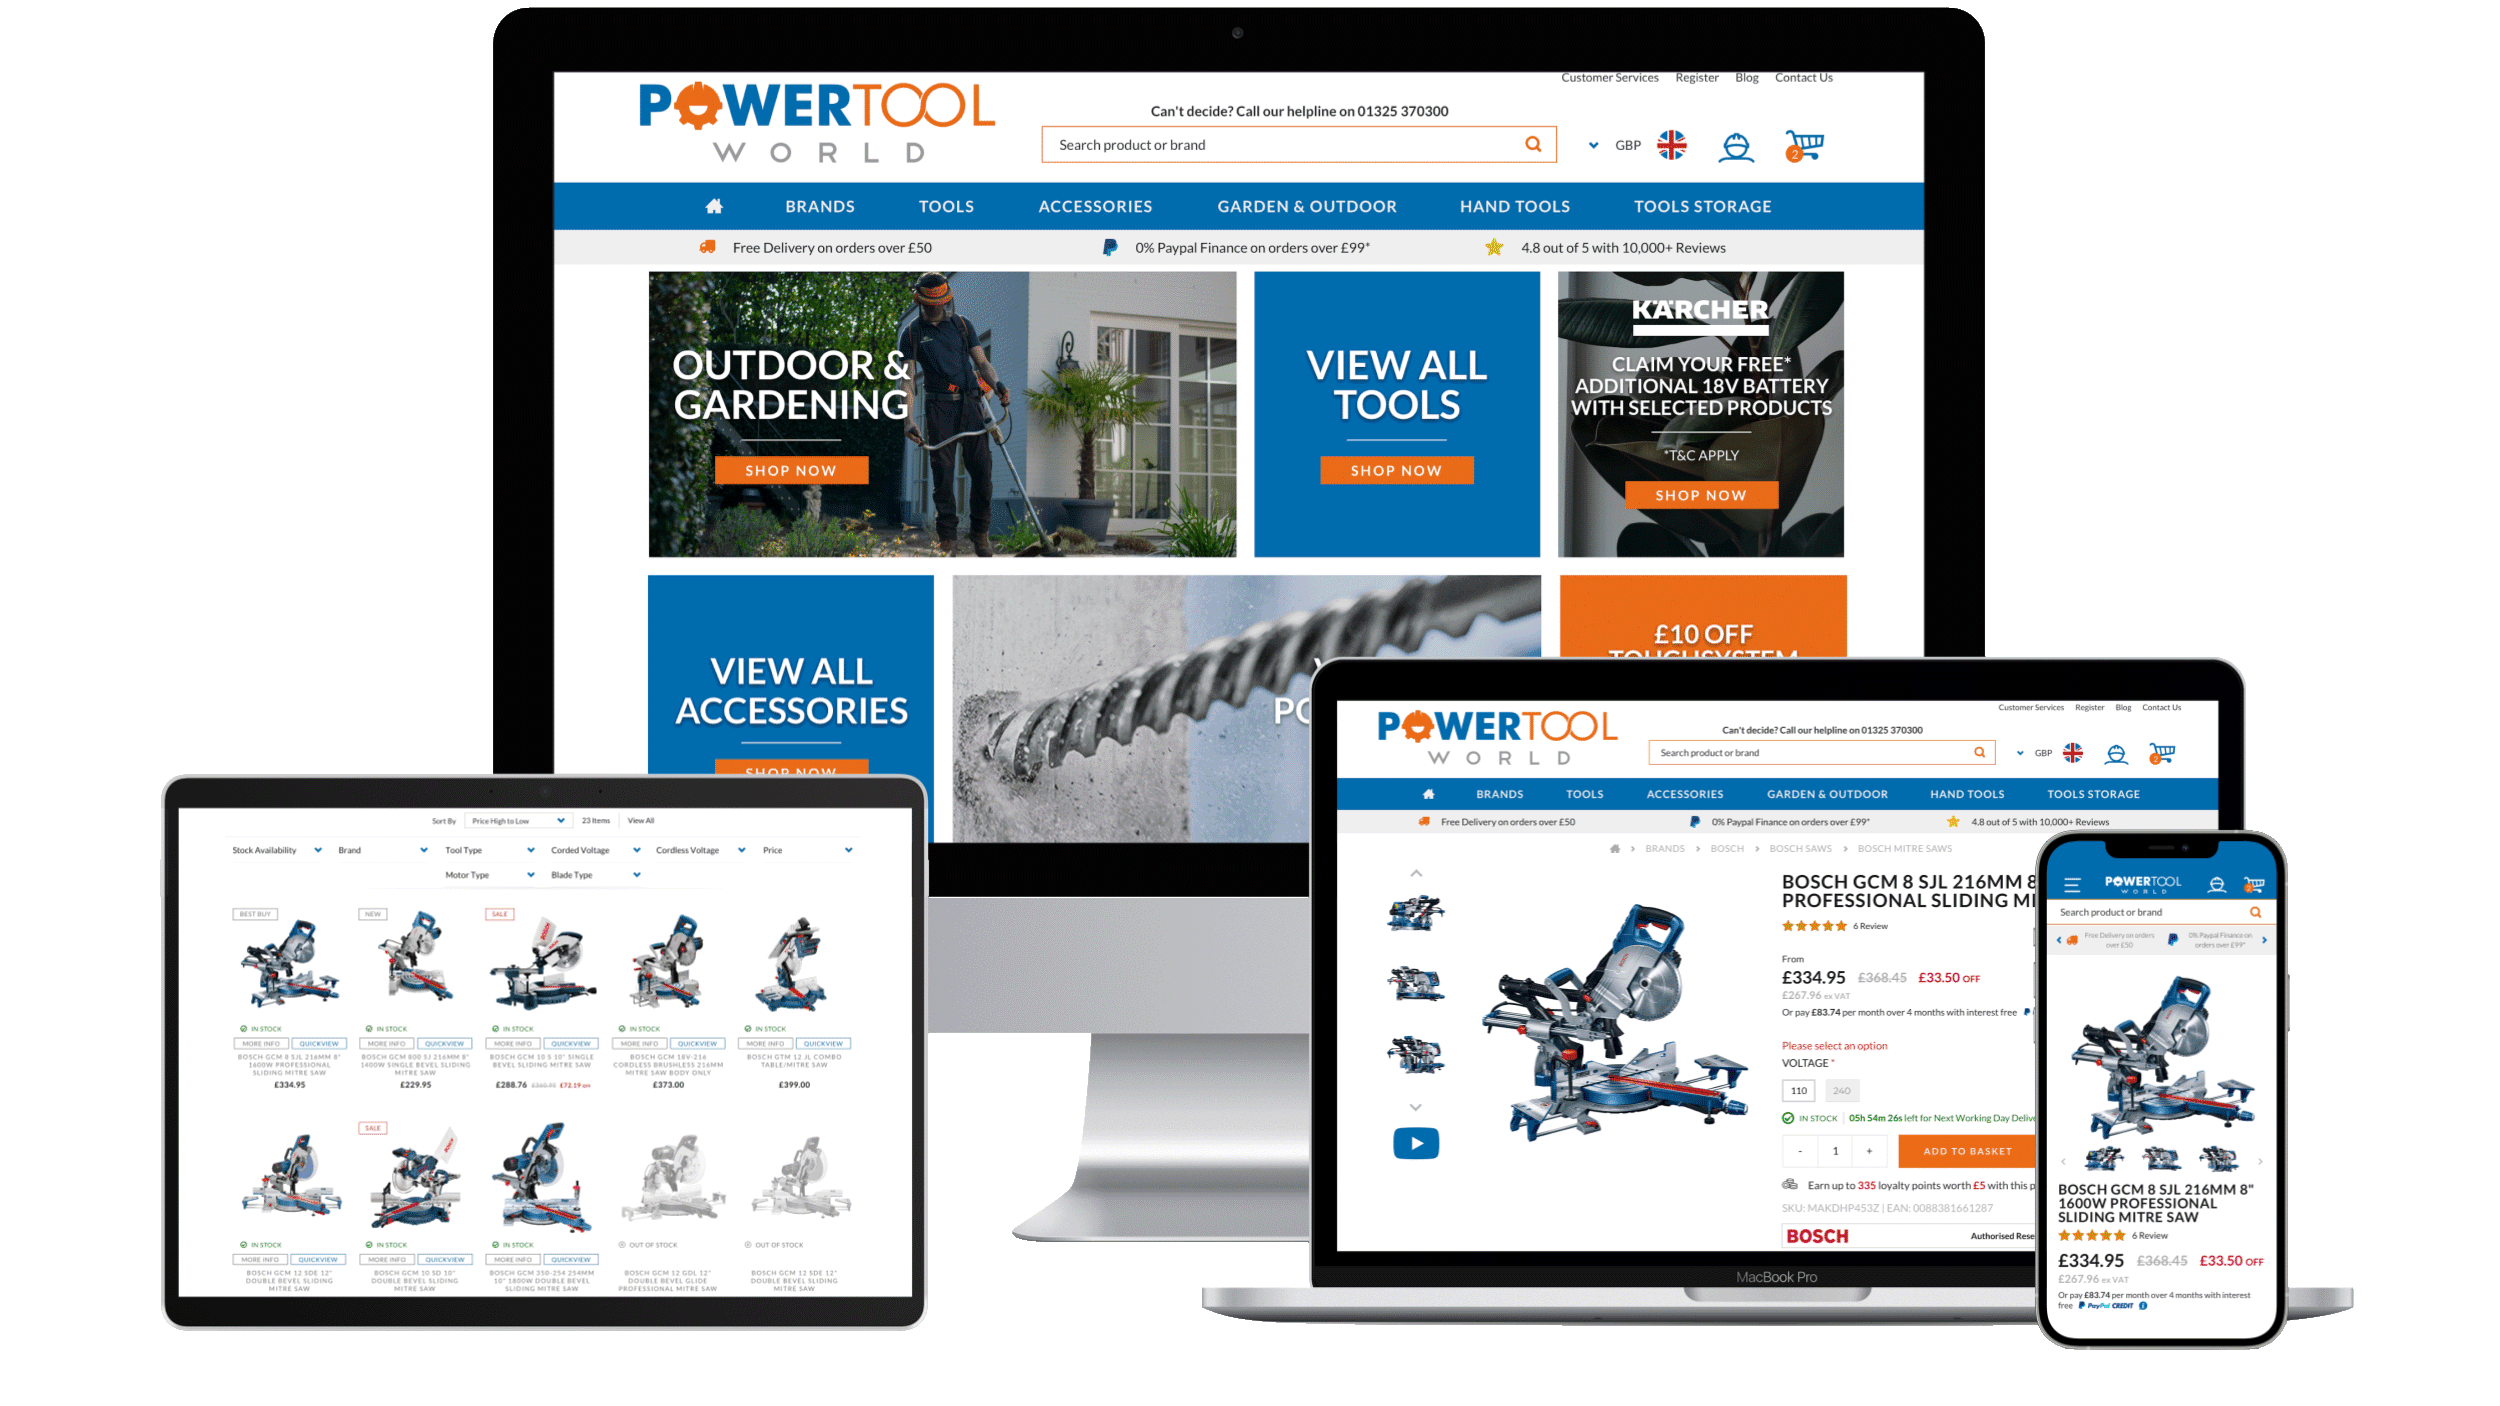 Powertool World Magento 2 Responsive Design